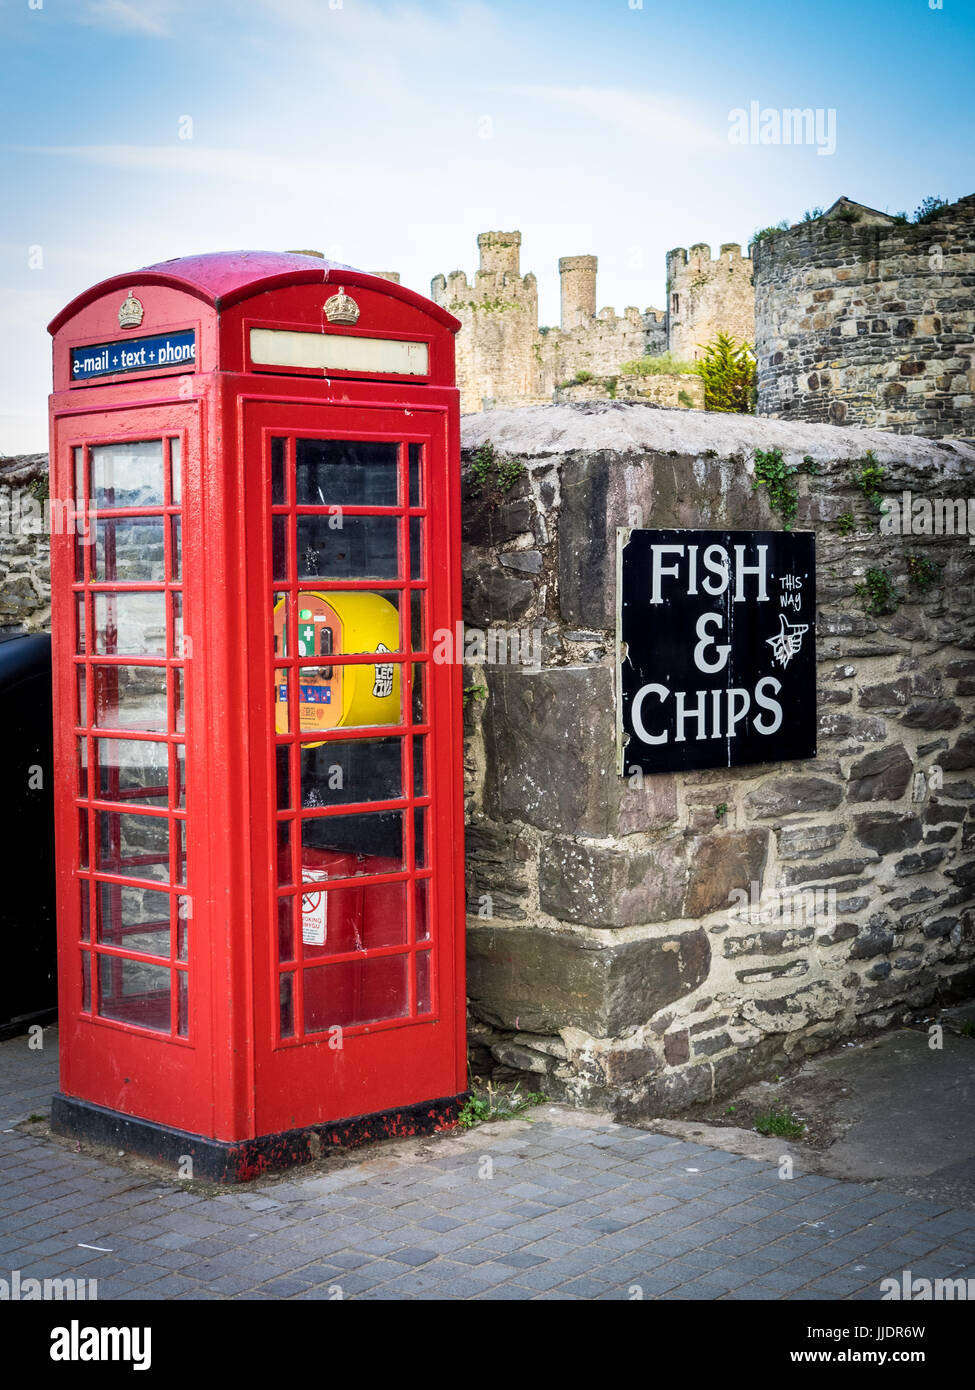 Defibrillator in a Phone Box - a traditional British Telephone Kiosk has been repurposed to hold a public defibrillator - Stock Image